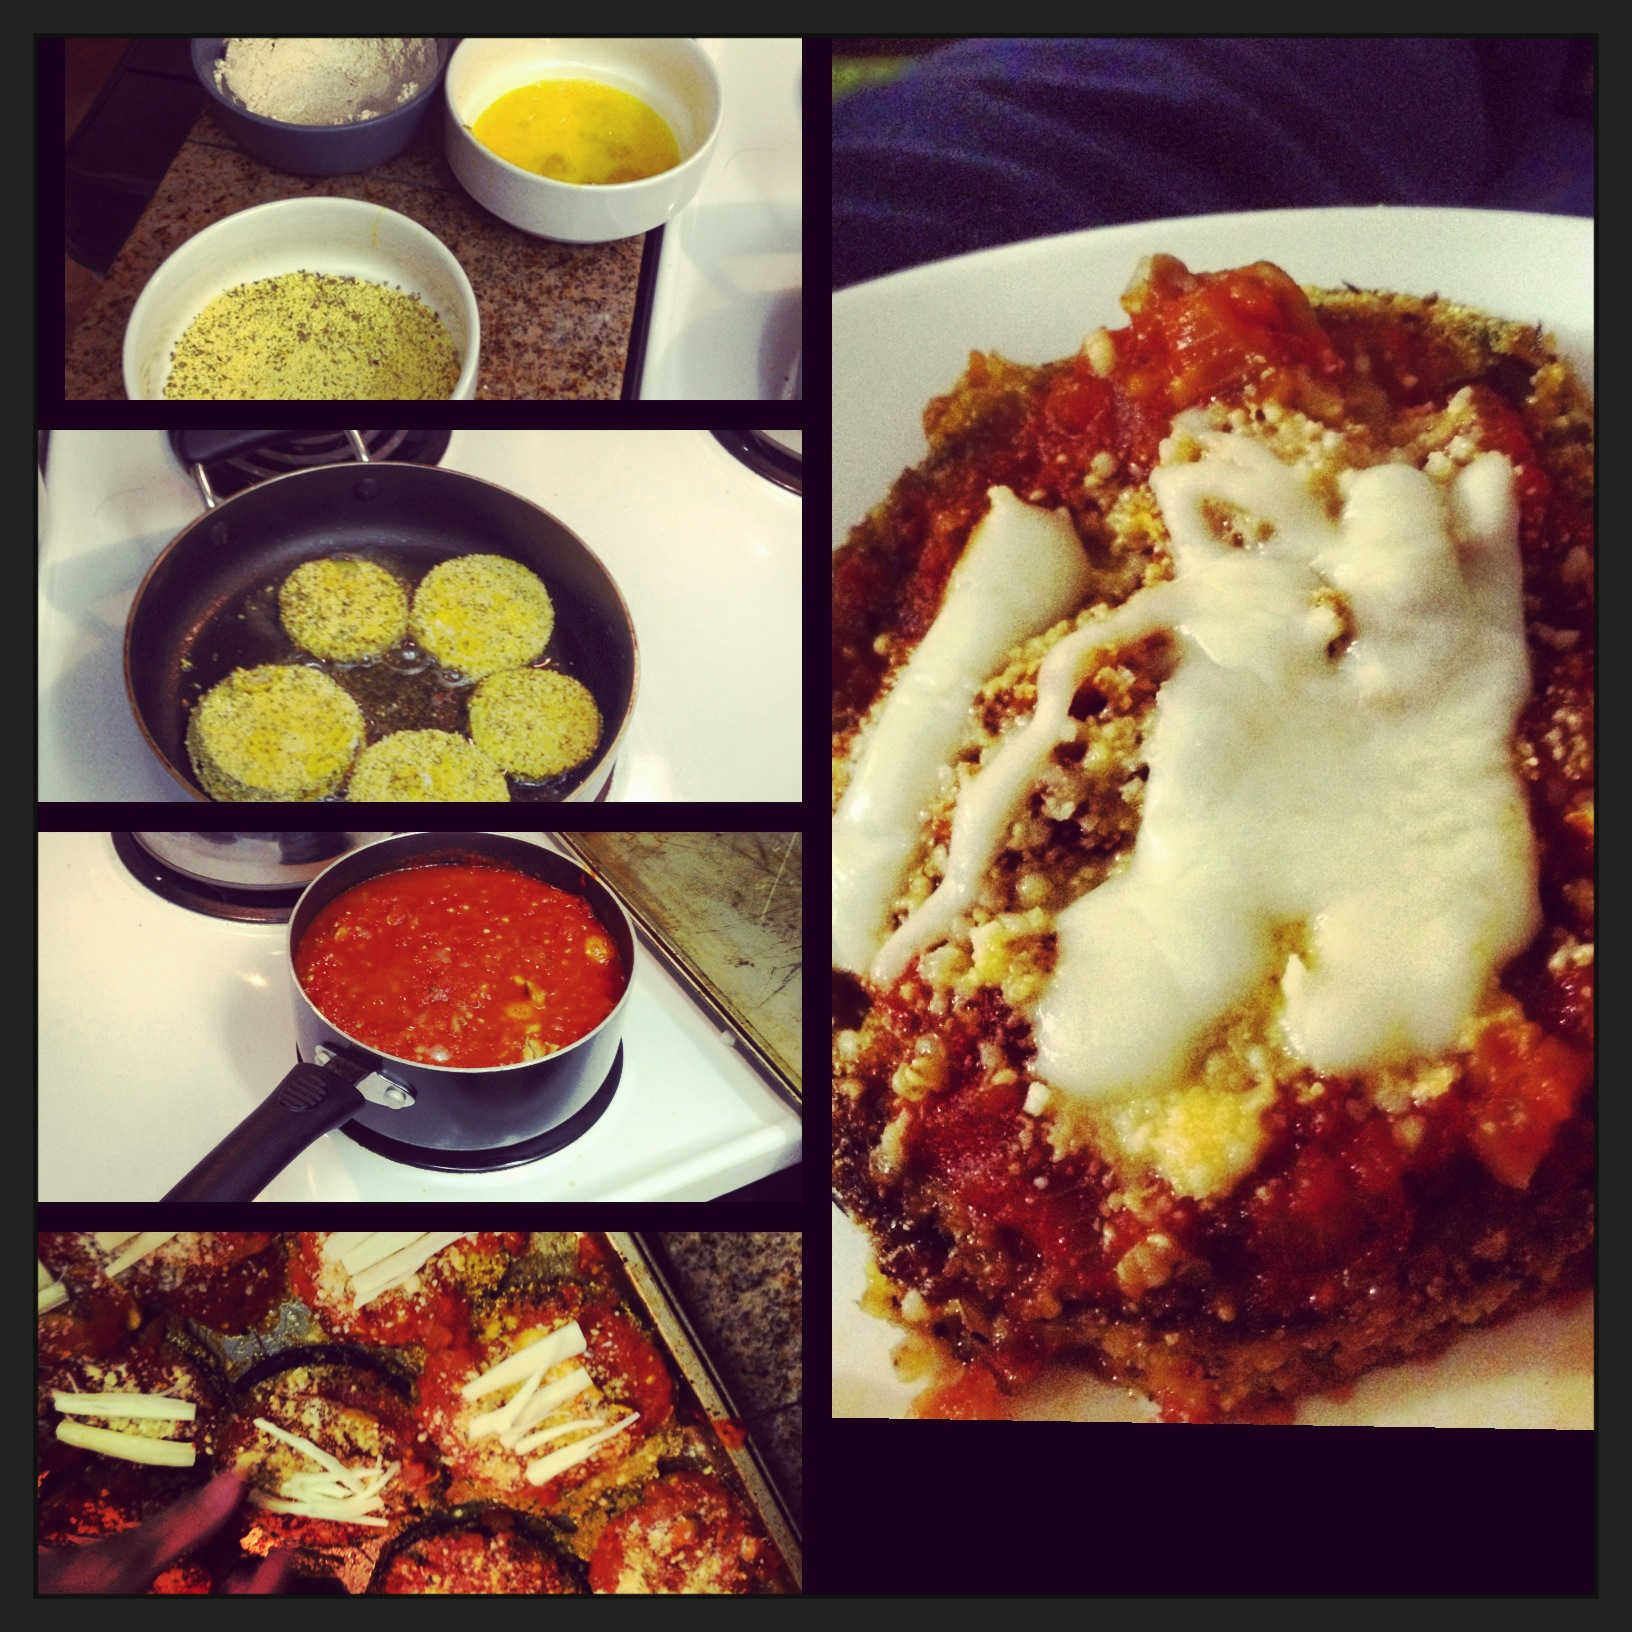 Damn, that's good Eggplant Parmesan!